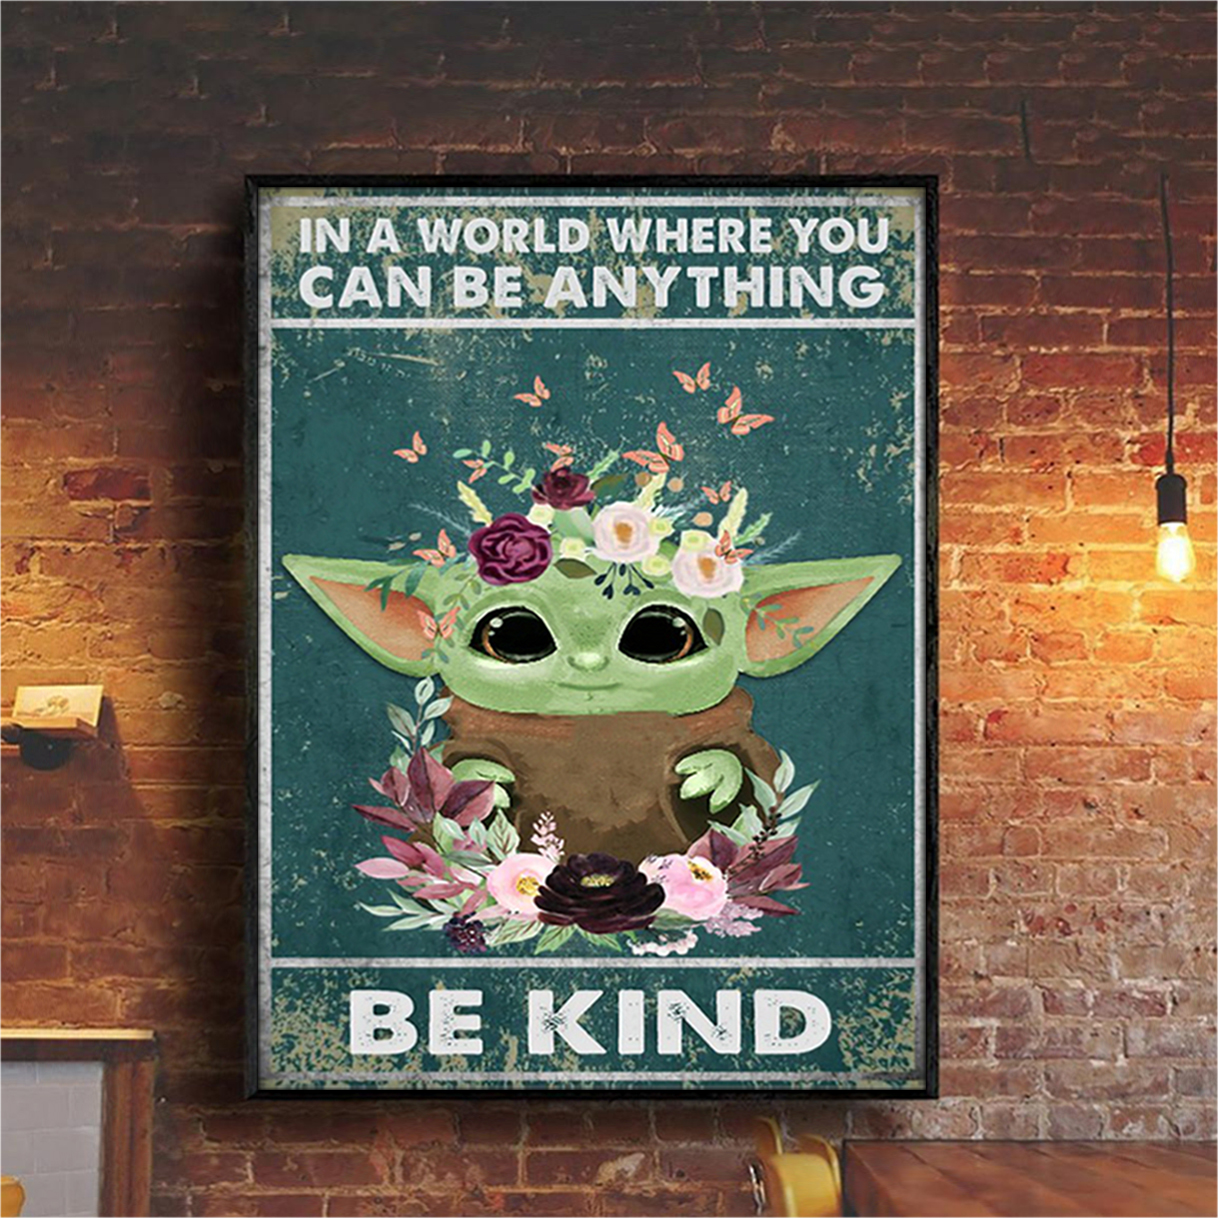 Baby yod in a world where you can be anything be kind poster A1